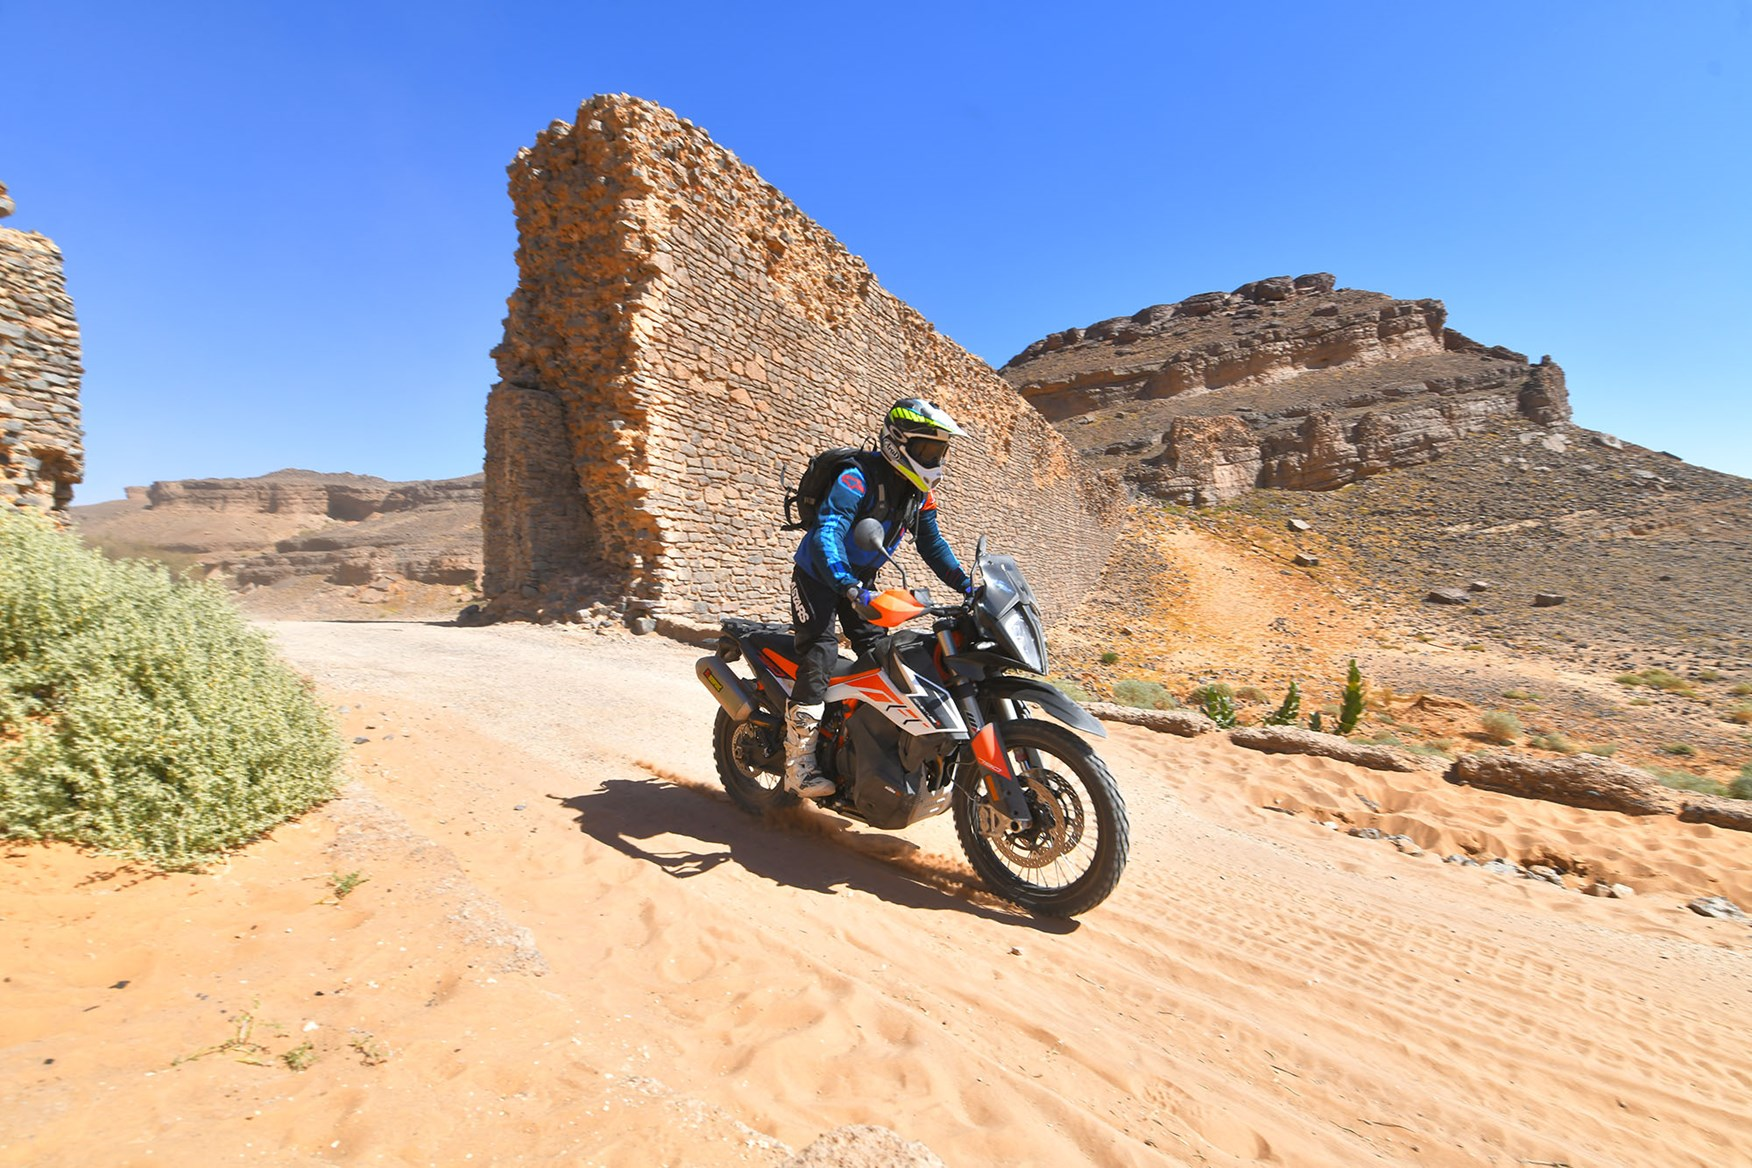 Ktm 790 Adventure R 2019 On Review